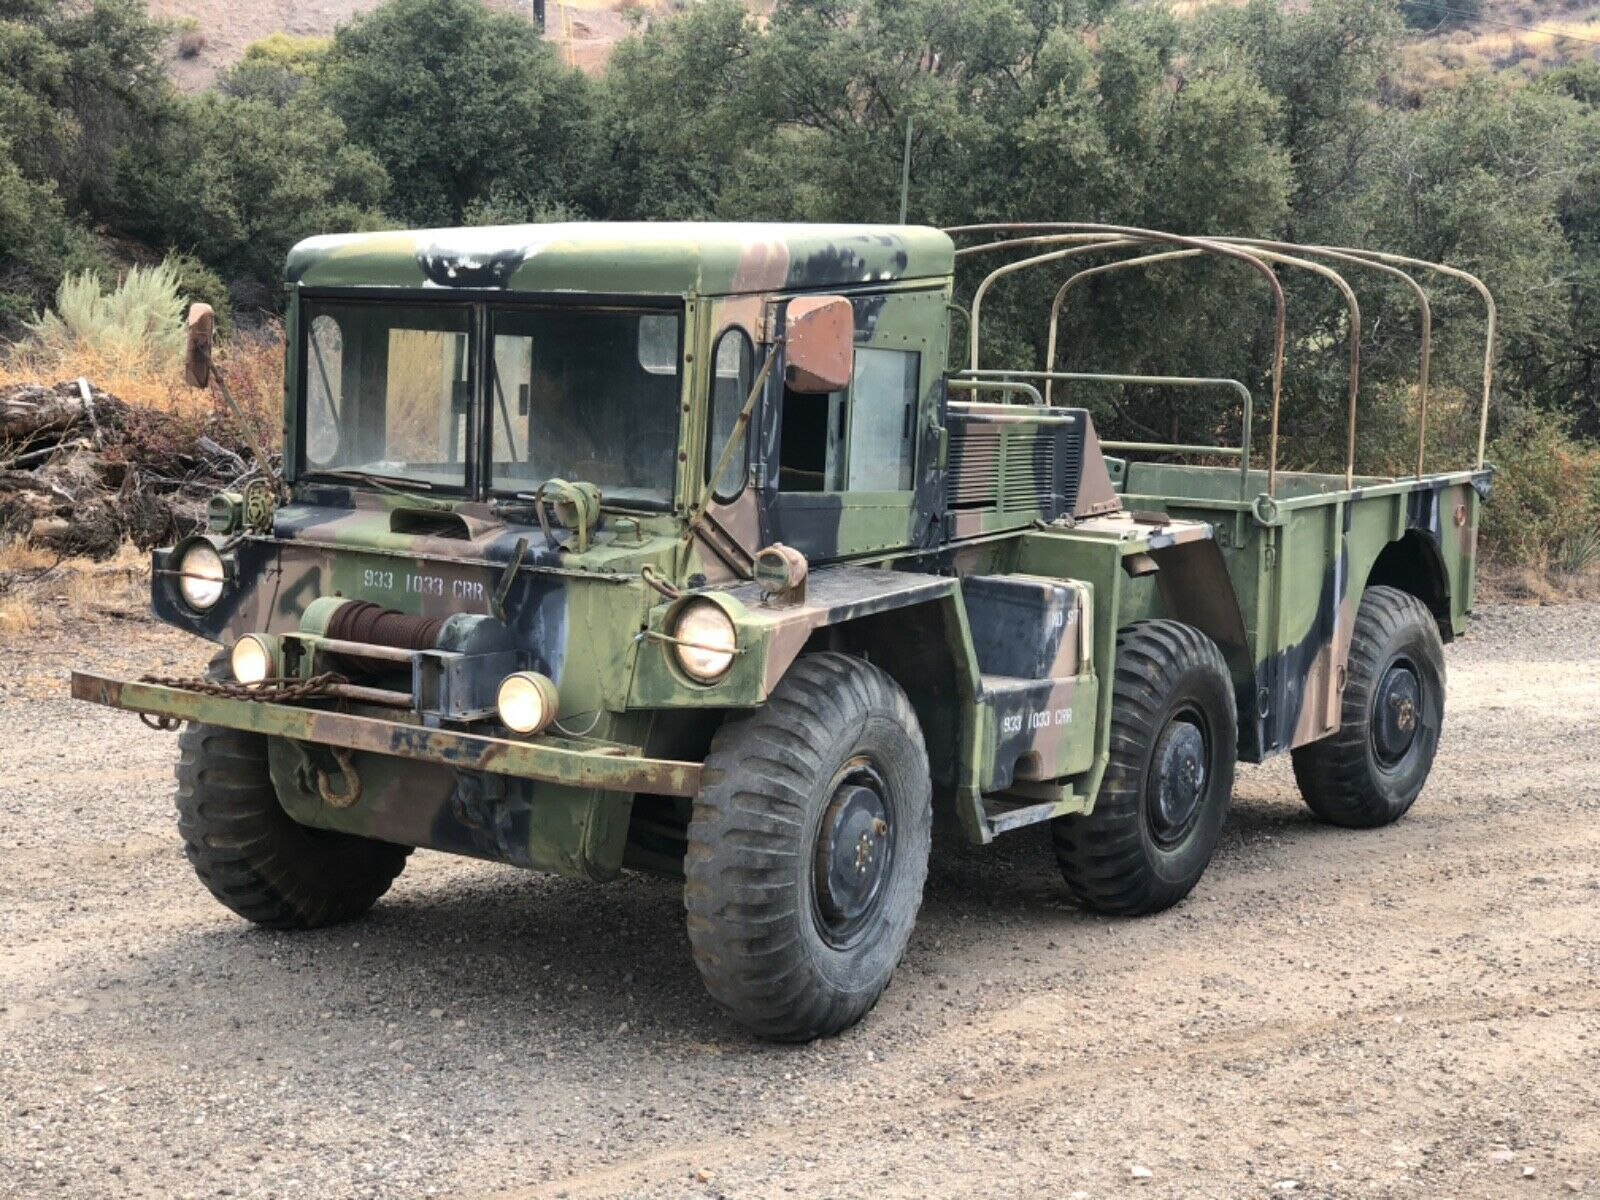 Get Your Goat: This 1970 US Army Gama Goat Is Running, Driving, and Pretty Awesome